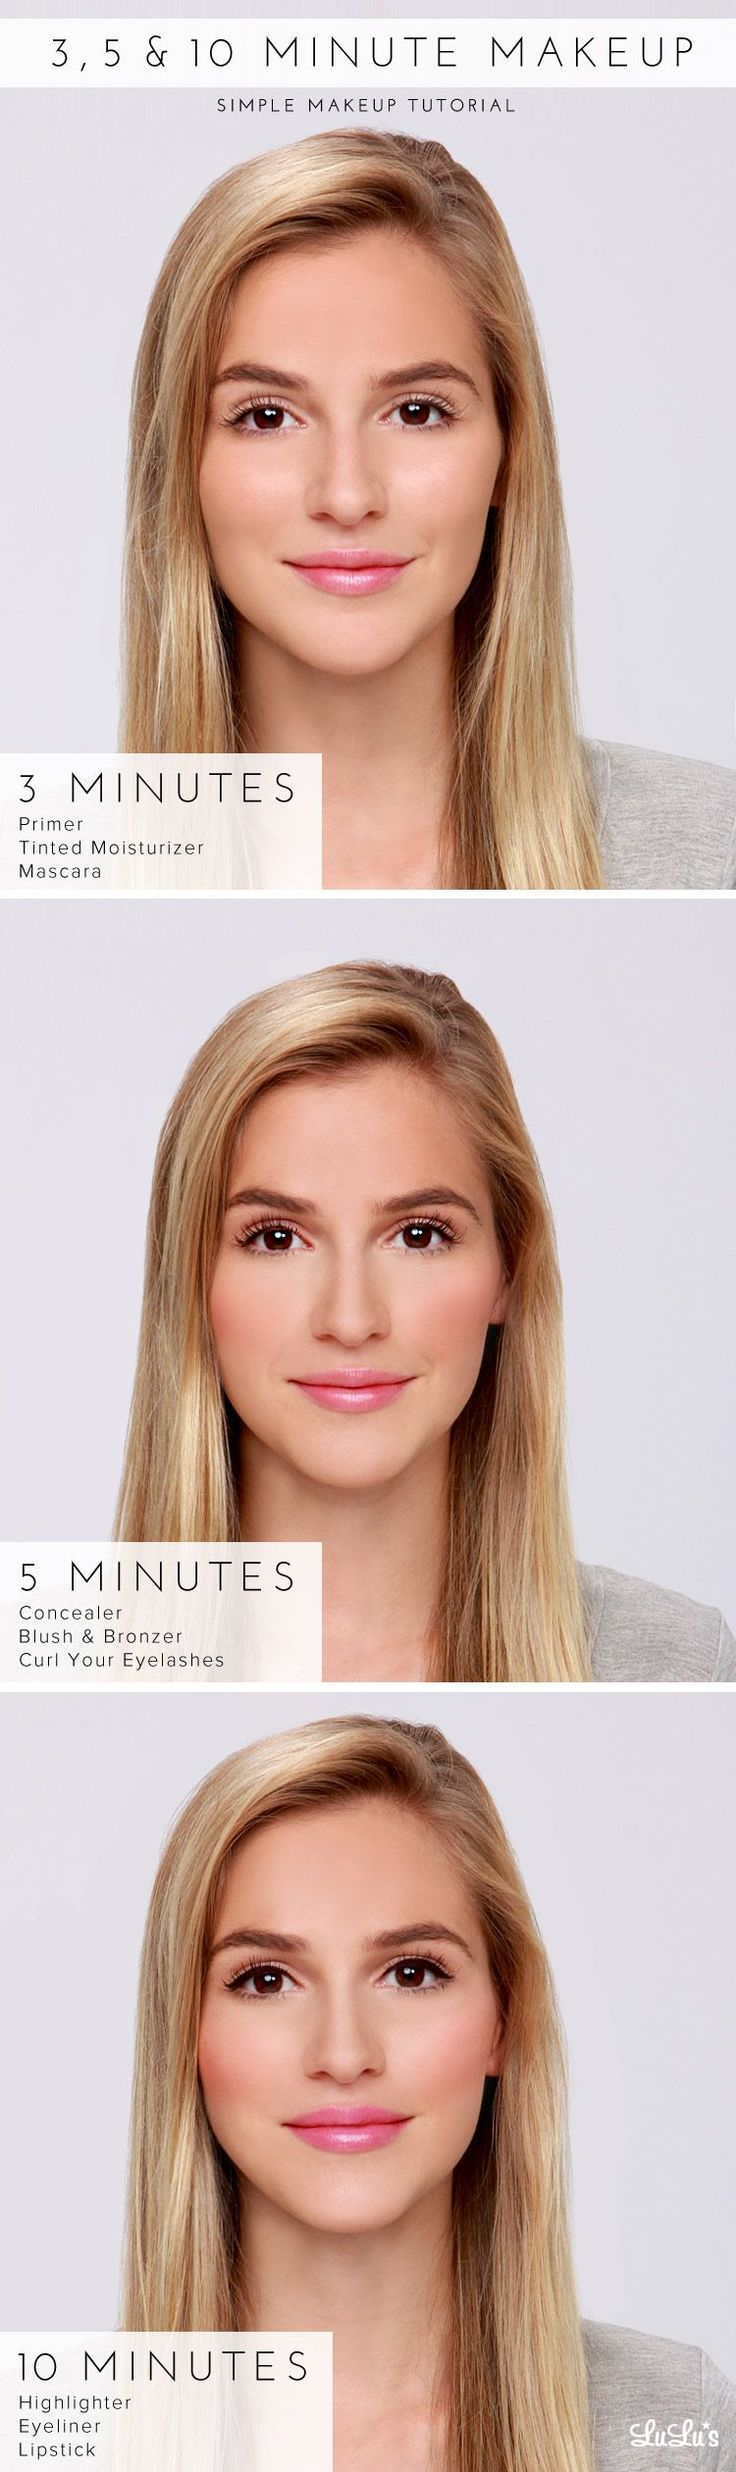 Wanna sleep in without sacrificing your makeup routine? We say grab that extra beauty sleep and get ready with our simple 3, 5 & 10 Minute Makeup